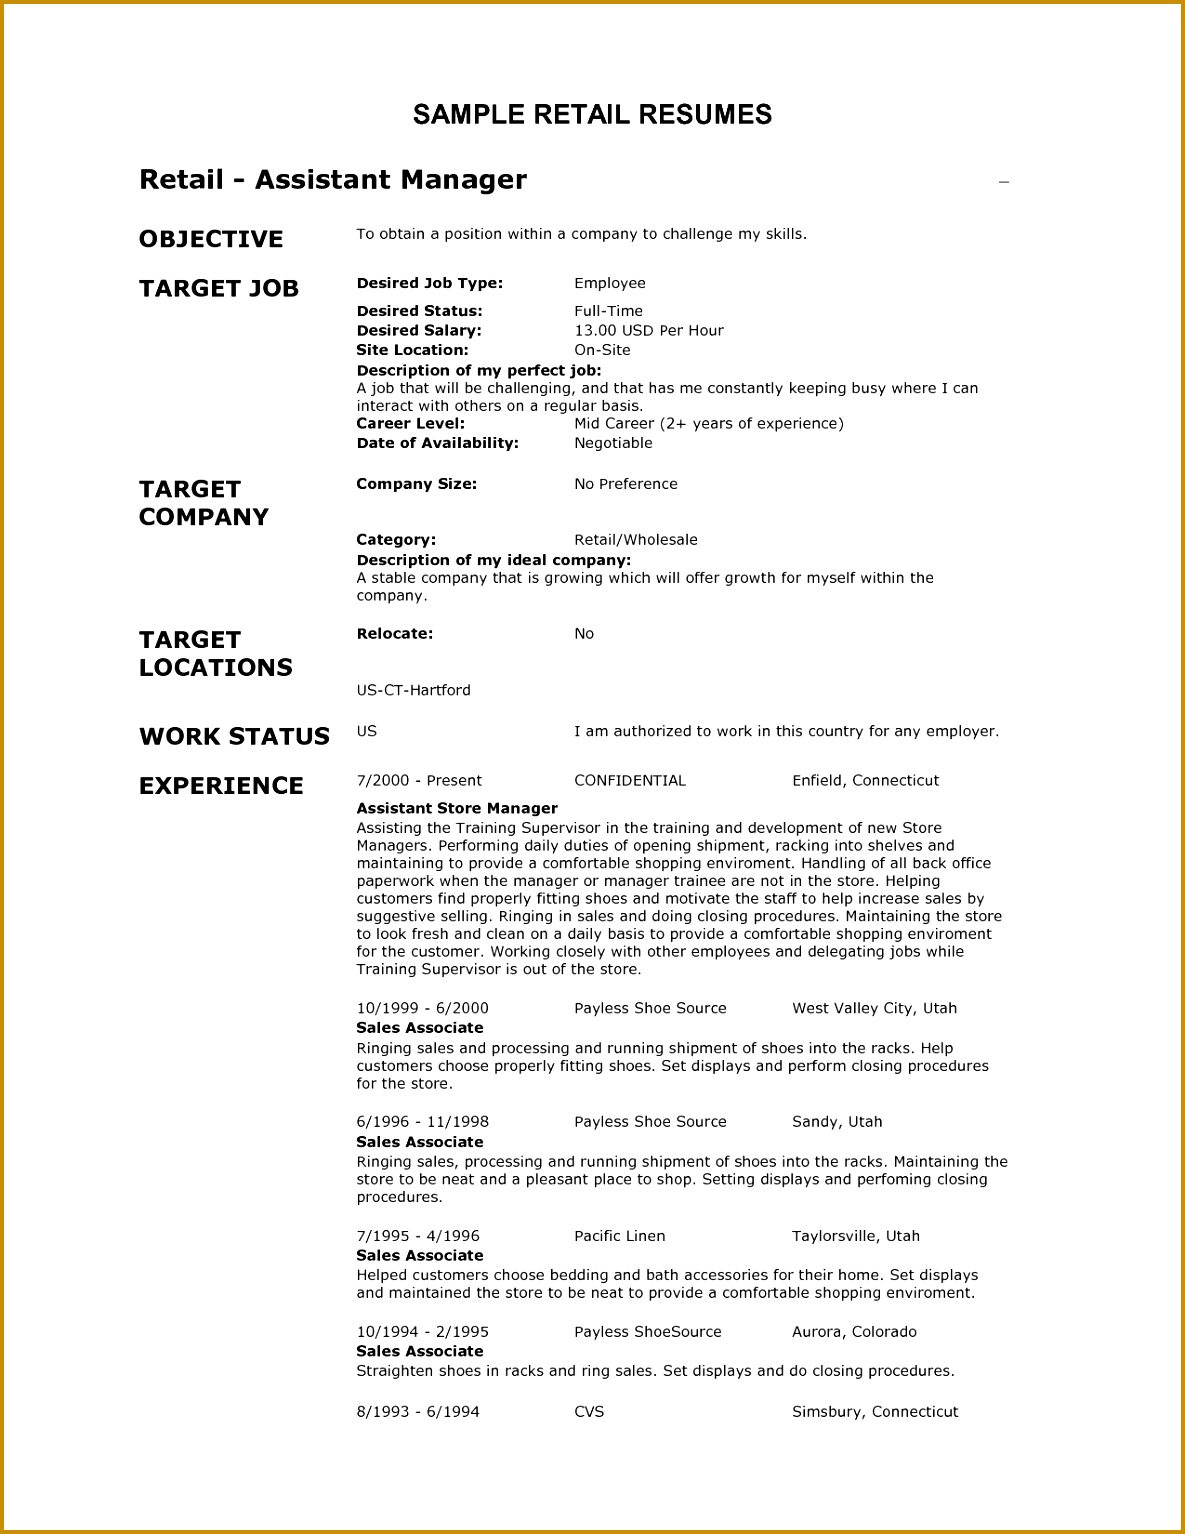 Functional Resume Template Free Awesome Public Relations Cover Letter No Experience top Dissertation 15341185